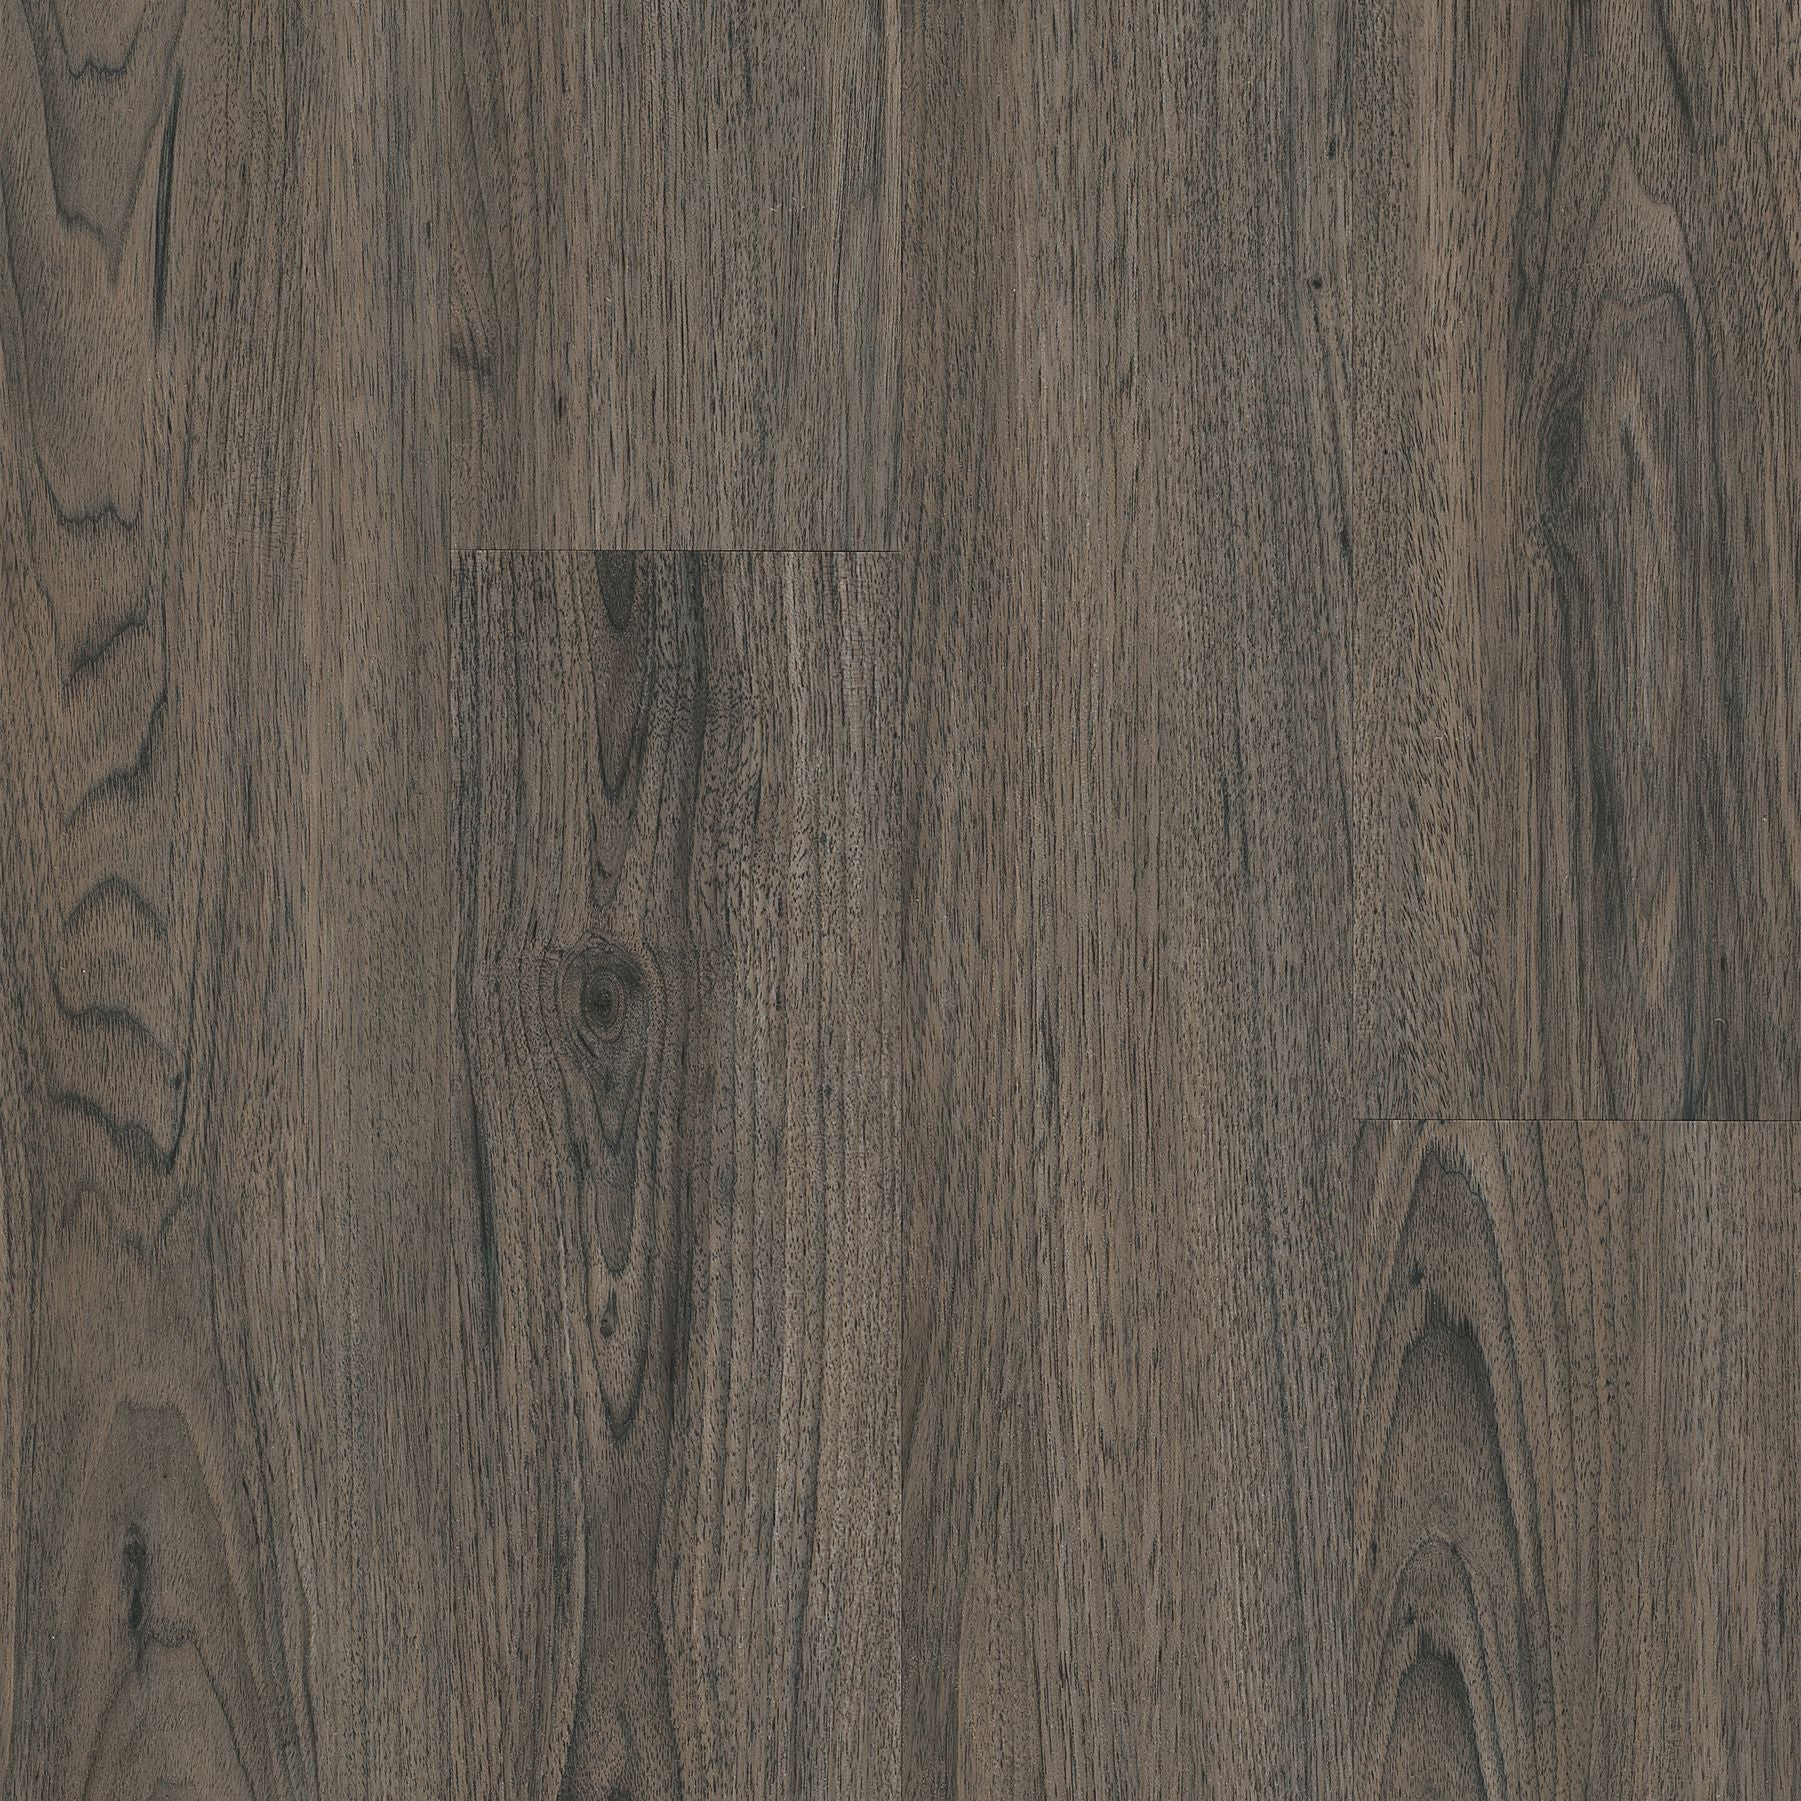 ARMSTRONG NATURAL PERSONALITY 2 WALNUT - CHARCOAL